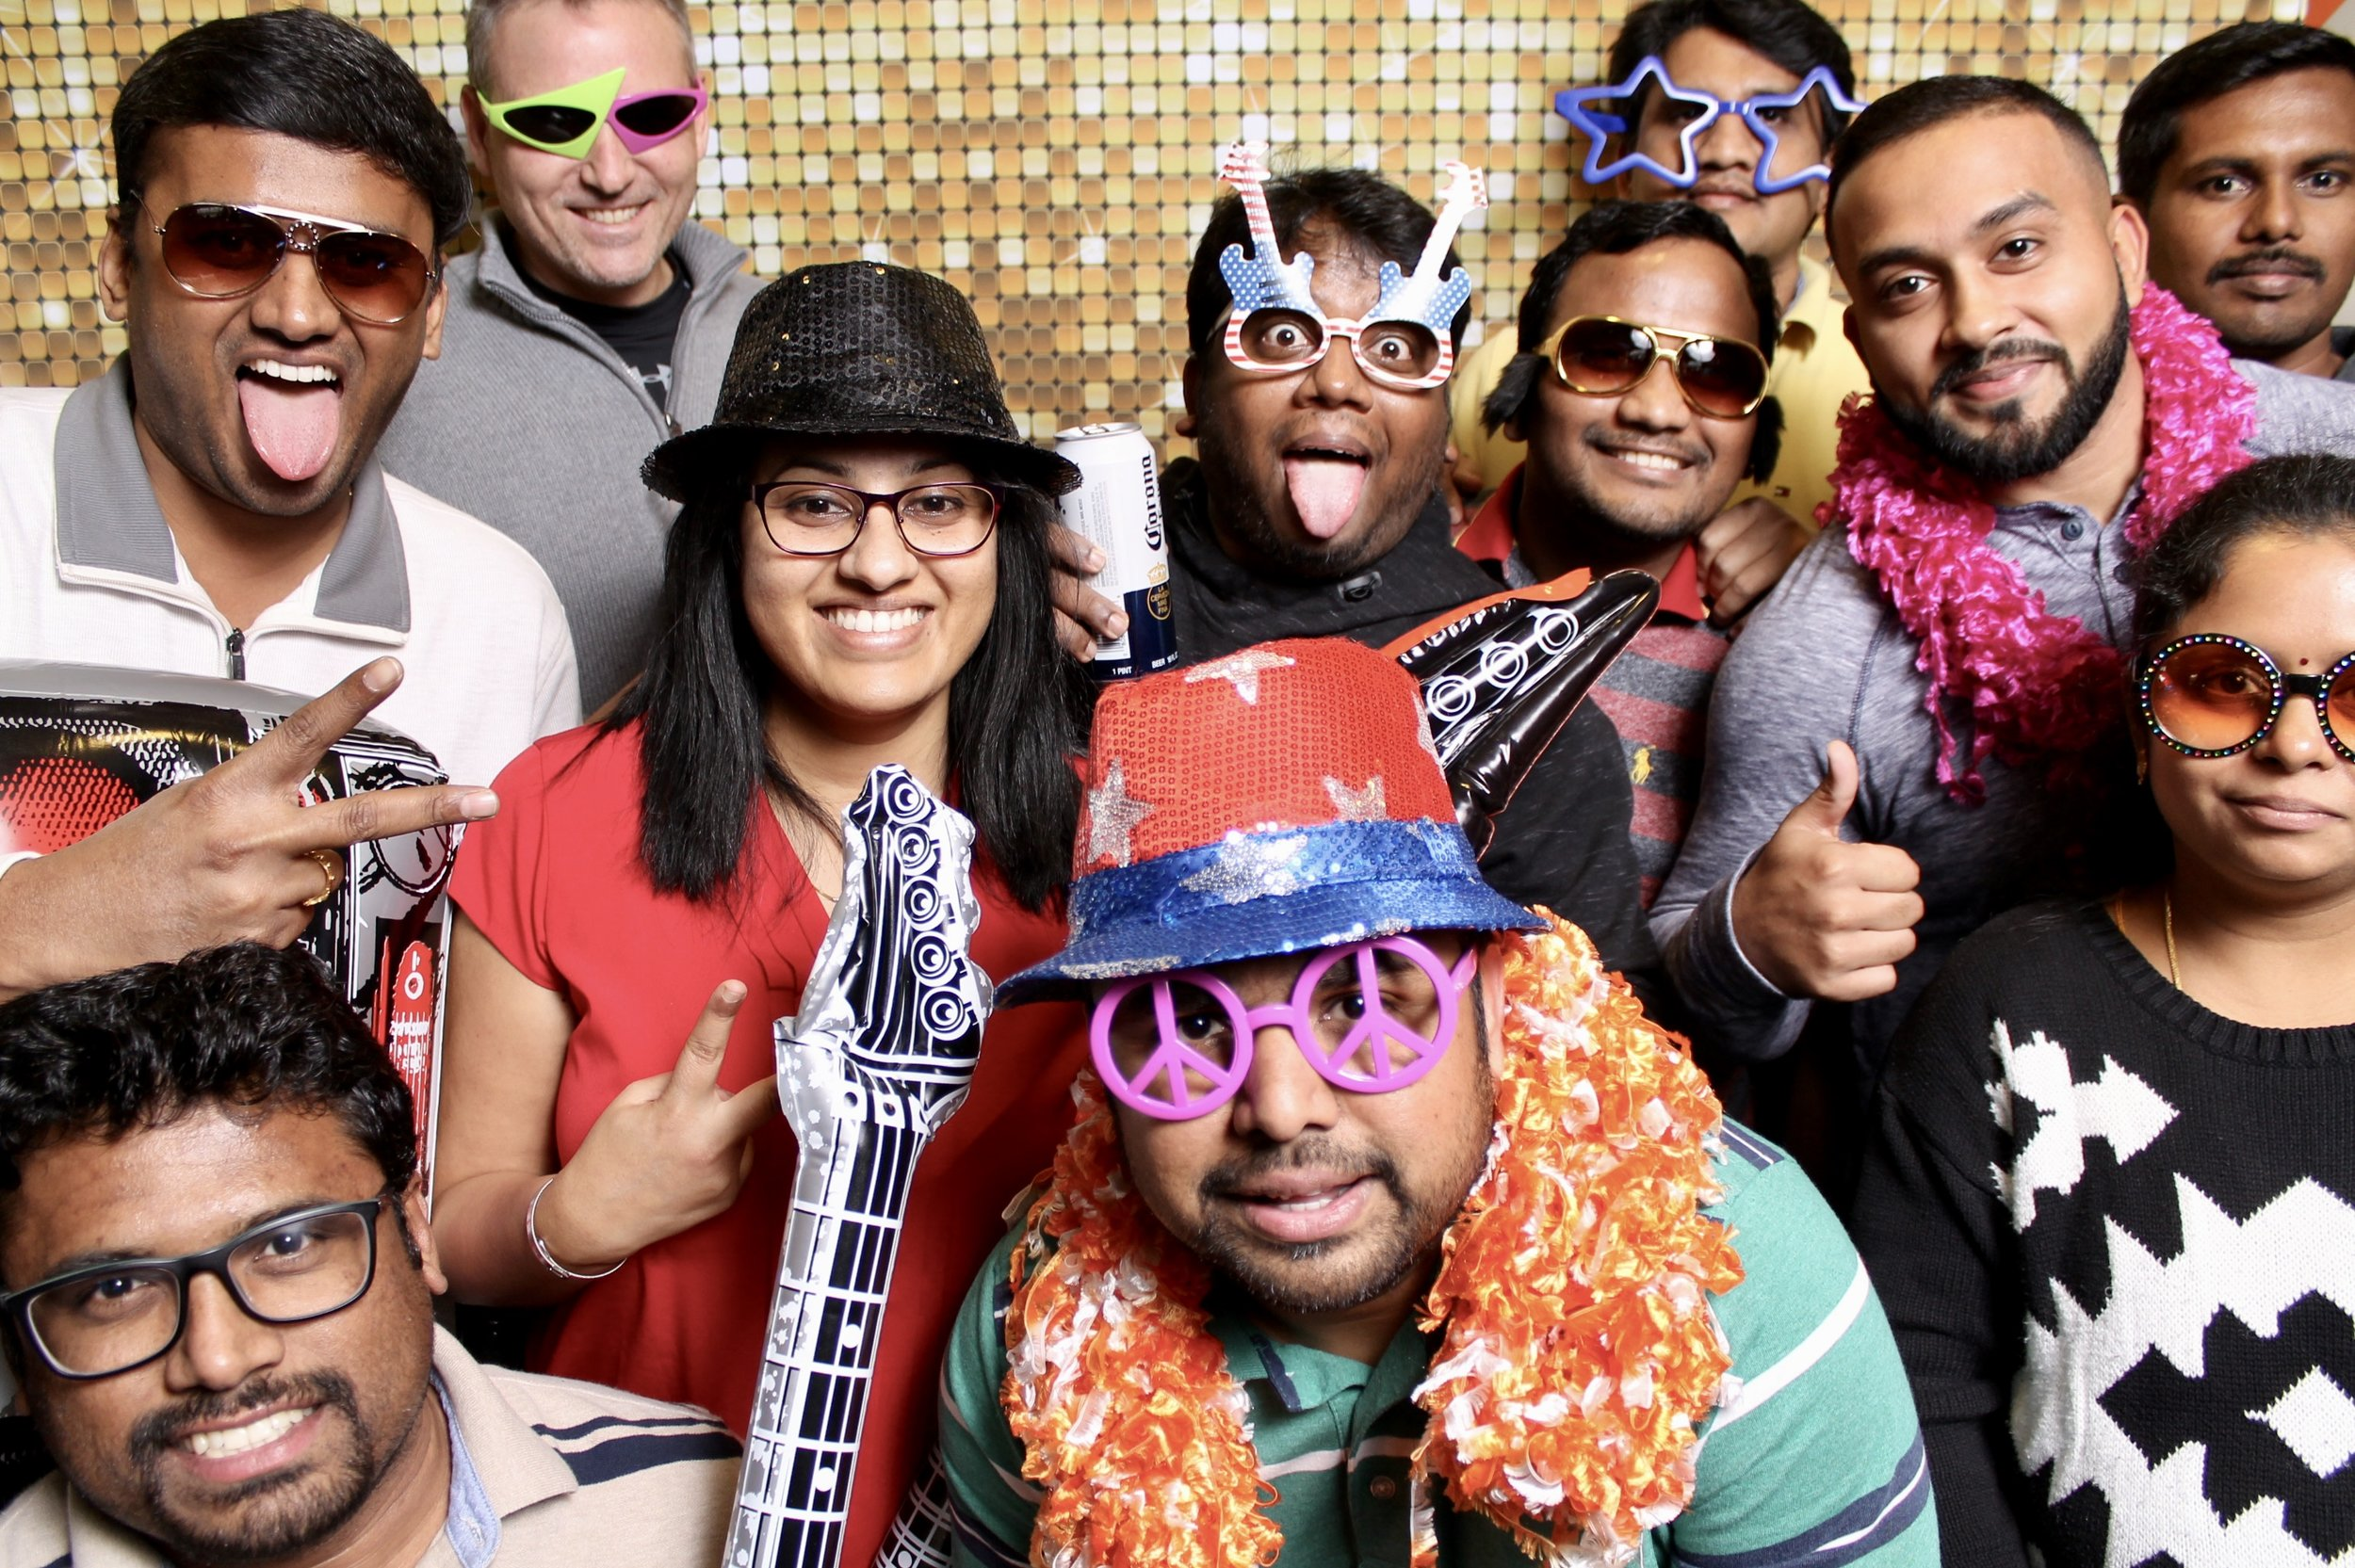 NON-STOP ENTERTAINMENT - YOUR GUESTS WILL HAVE MORE FUN AT YOUR EVENT THAN ANY OTHER THEY WILL ATTEND ALL YEAR. THE ENTERTAINMENT IN THE PHOTO BOOTH LASTS ALL NIGHT LONG!